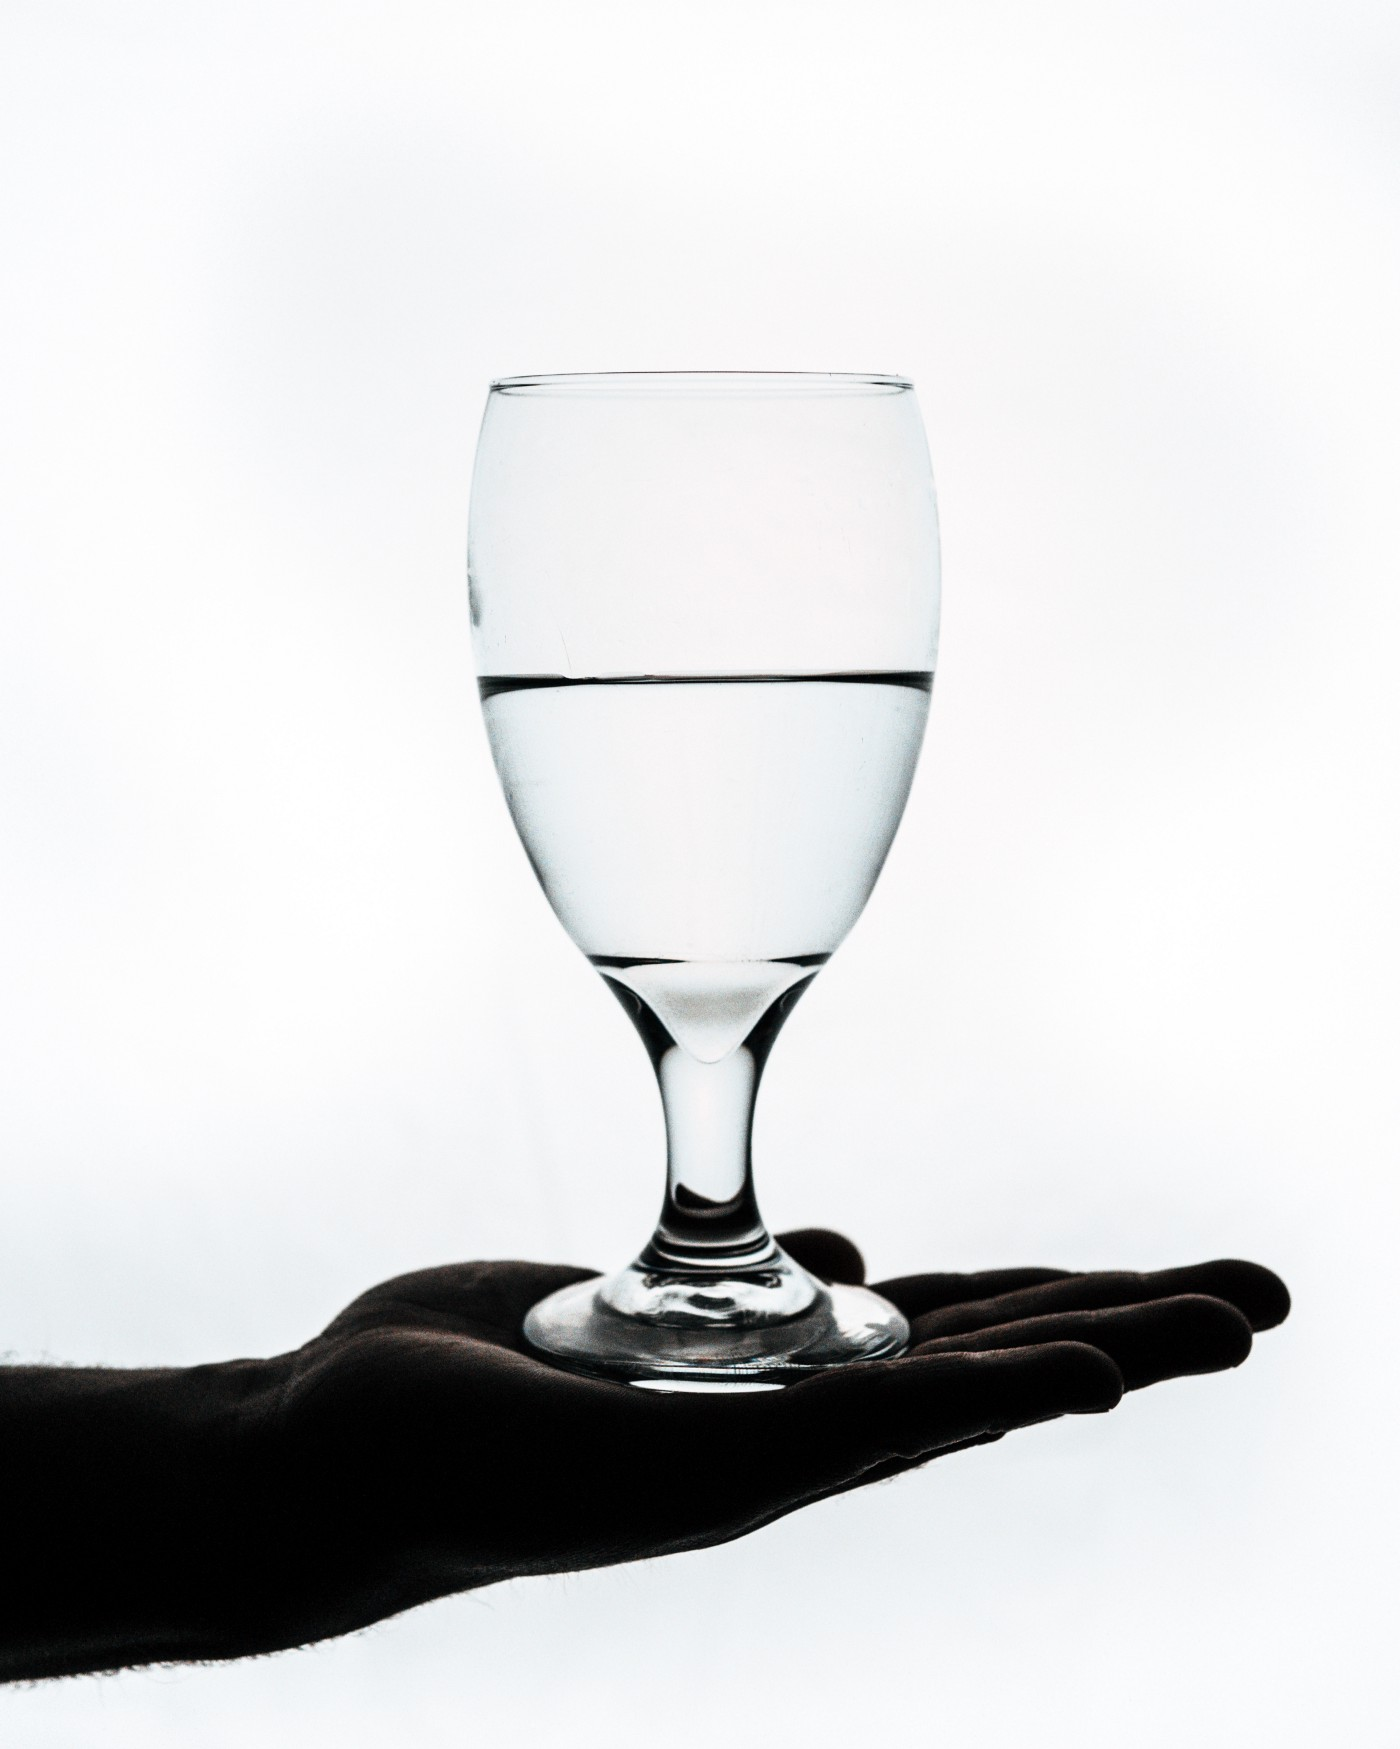 A dark hand open palm up while holding a wine glass. The Glass is half filled with water.